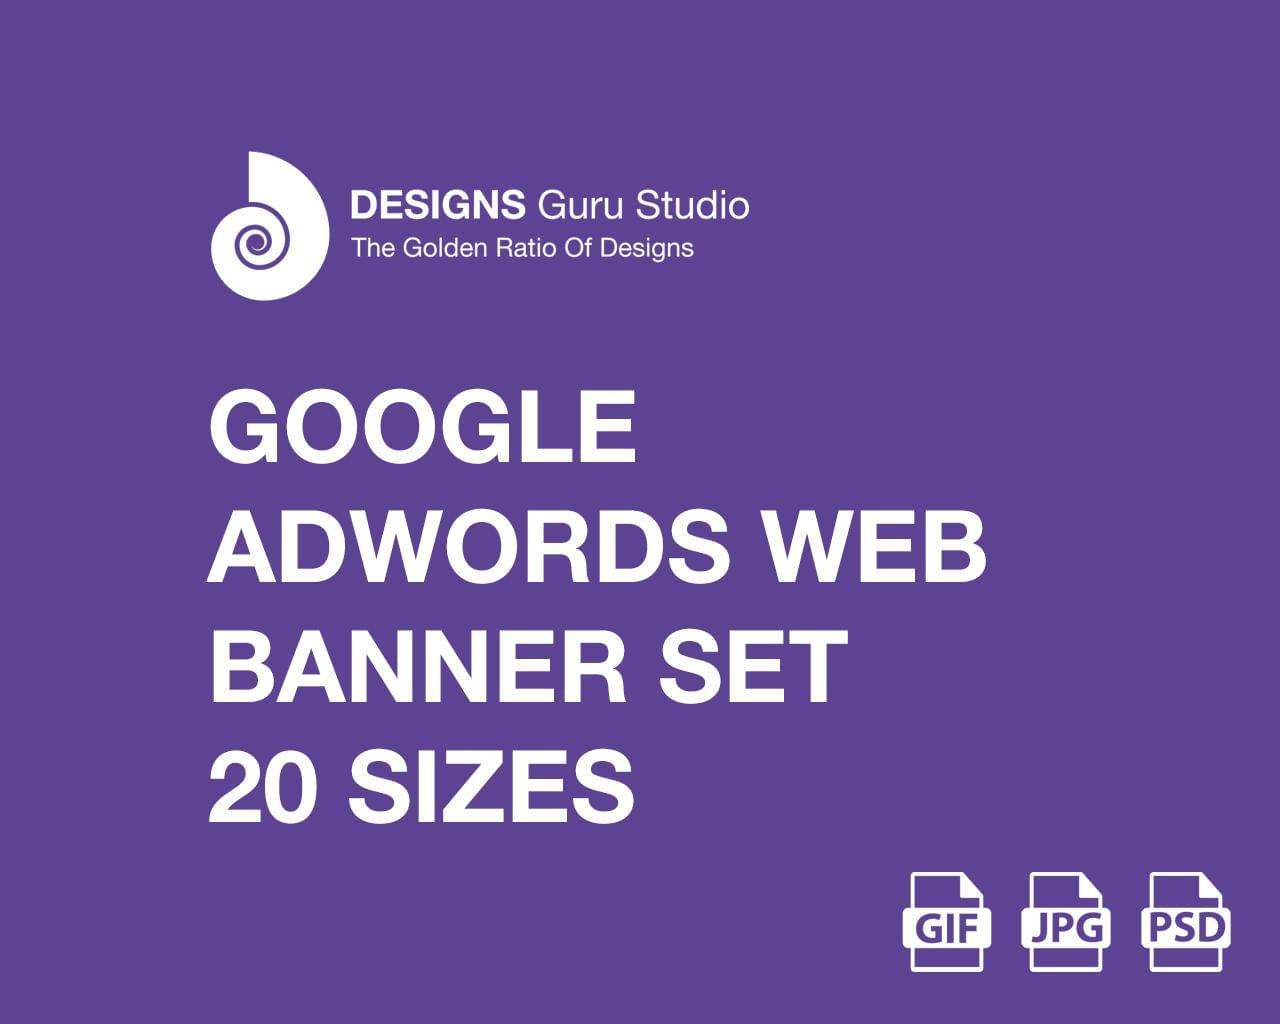 Google AdWords Web Banner Set - 20 Sizes (GIF/JPG) by designsgurustudio - 115306